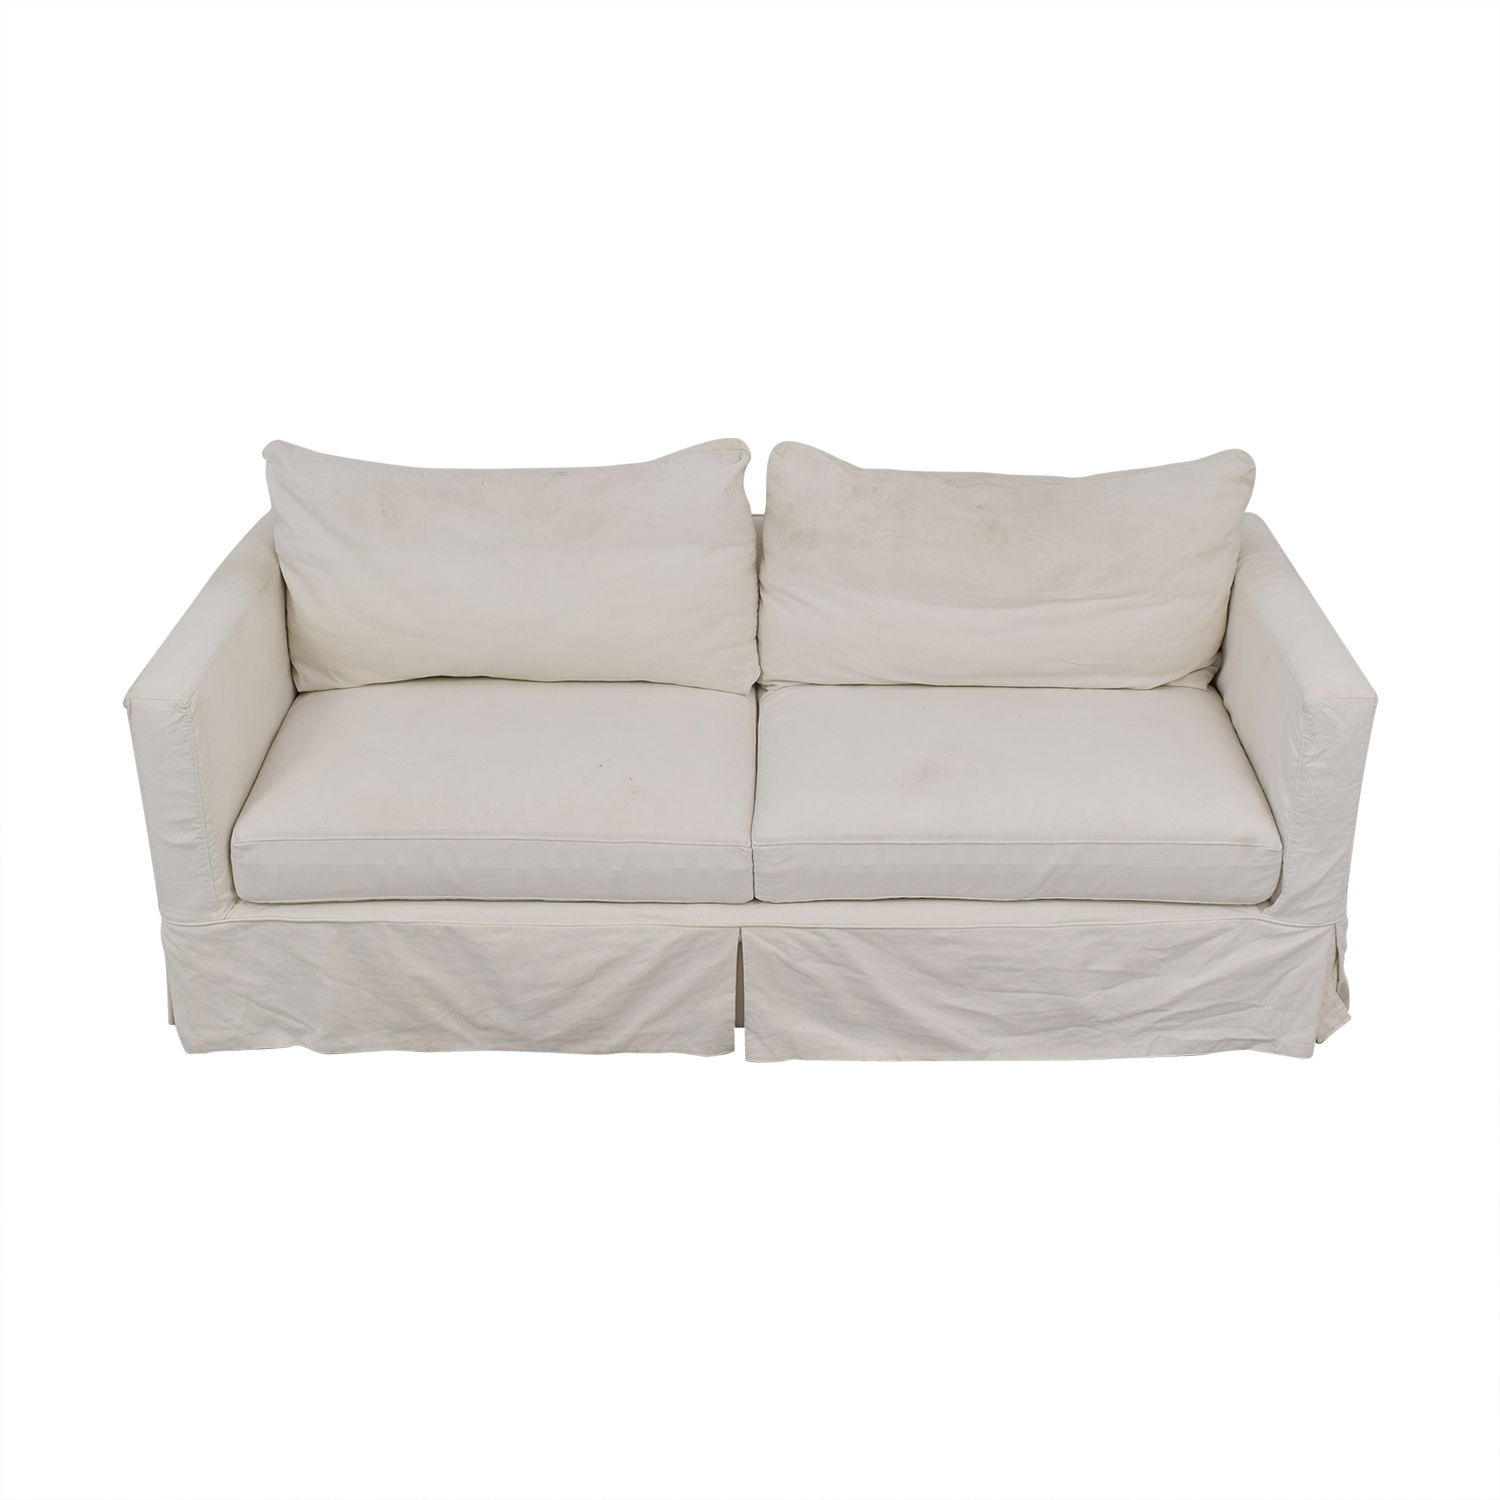 Crate & Barrel Crate & Barrel Willow Modern Slipcovered Sofa used